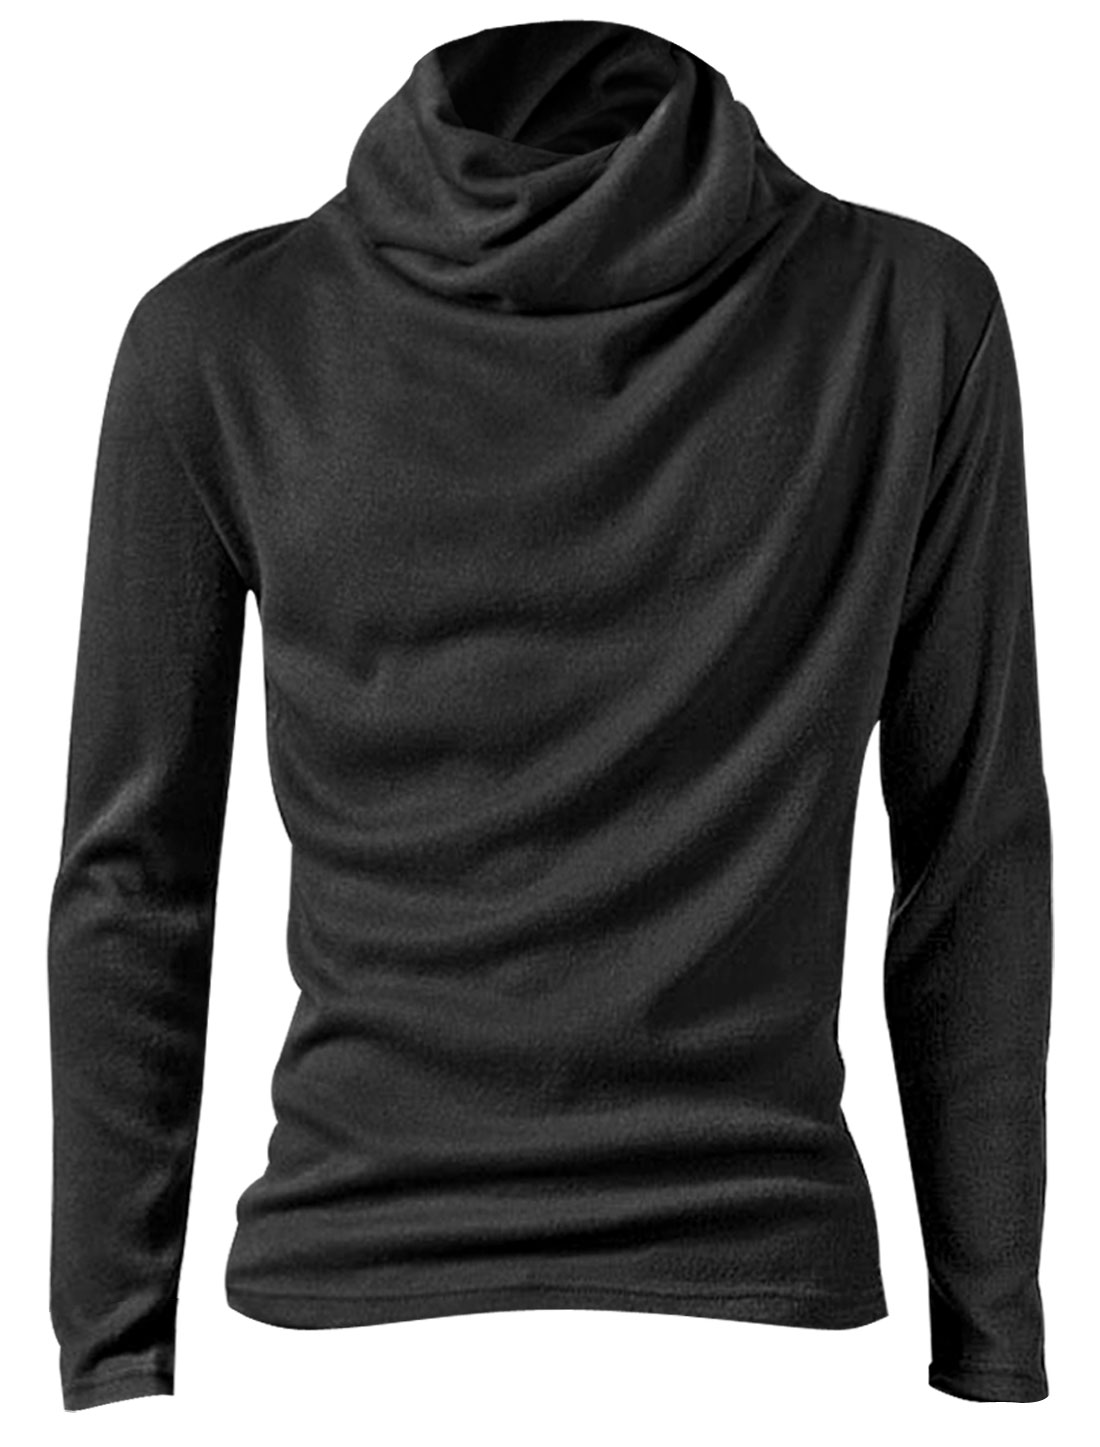 Men Stylish Dark Gray Turtleneck Stretchy Casual Slim Fit Top Shirt